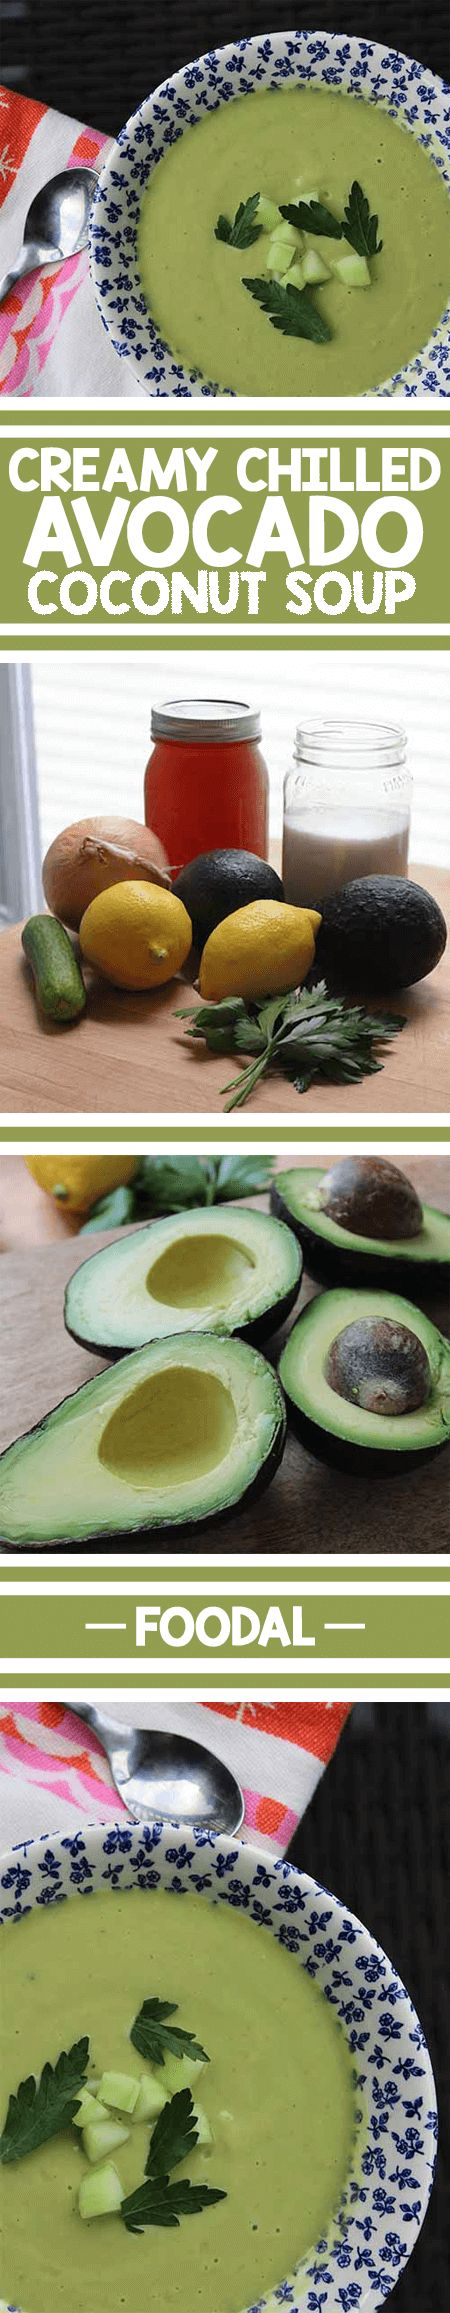 ... today! http://foodal.com/recipes/soups/chilled-avocado-coconut-soup